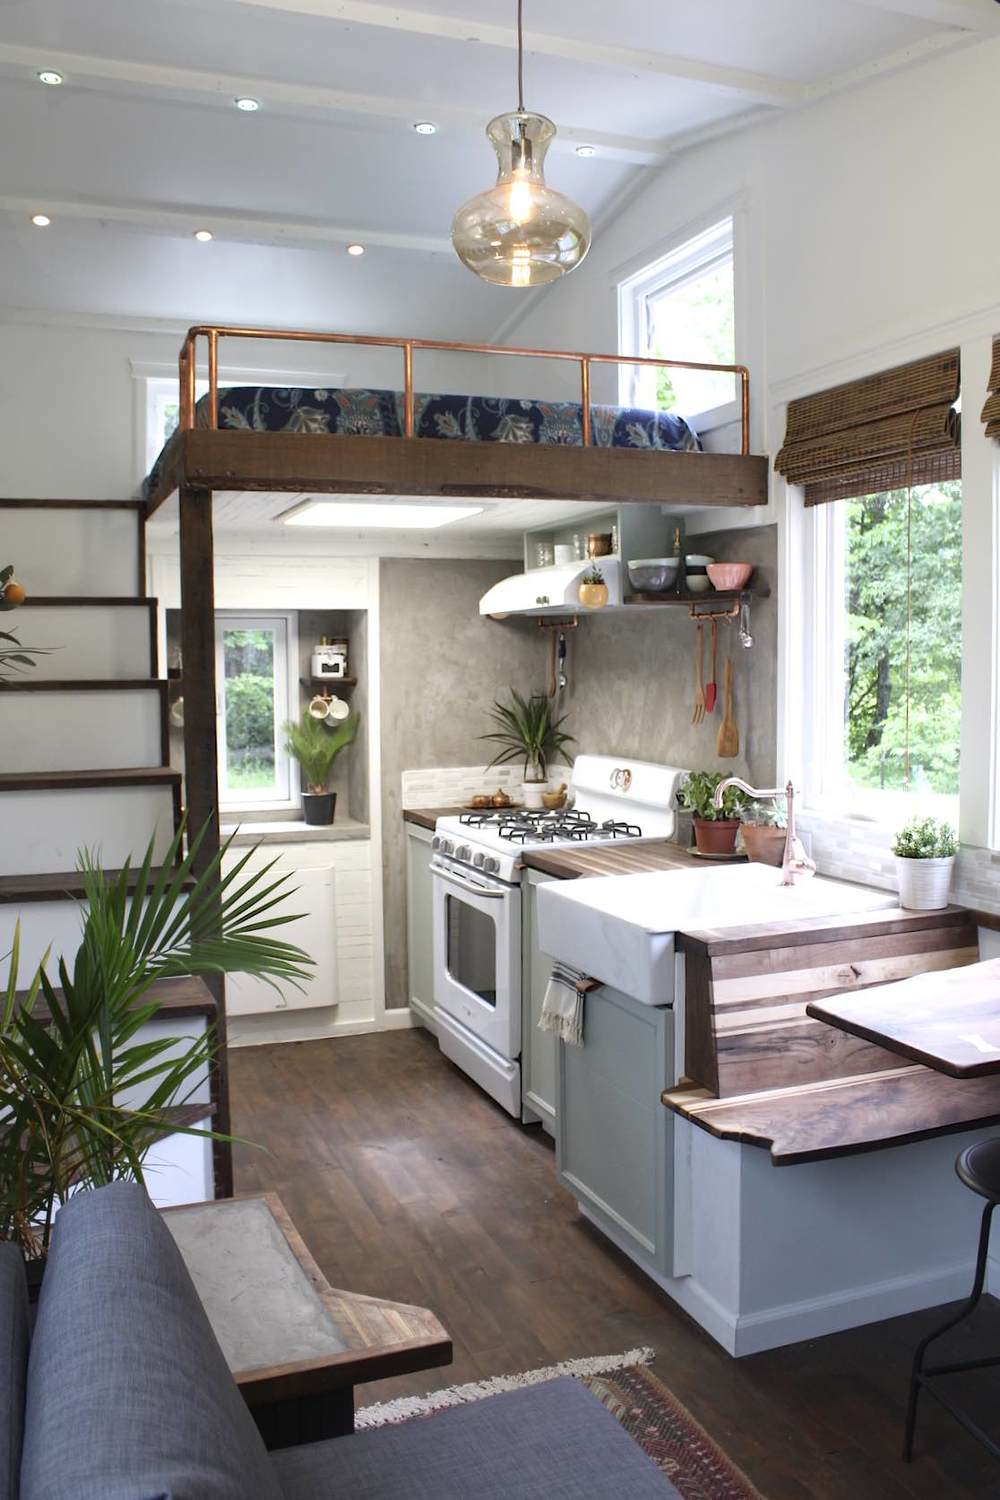 Artisan Retreat Tiny Home by Handcrafted Movement